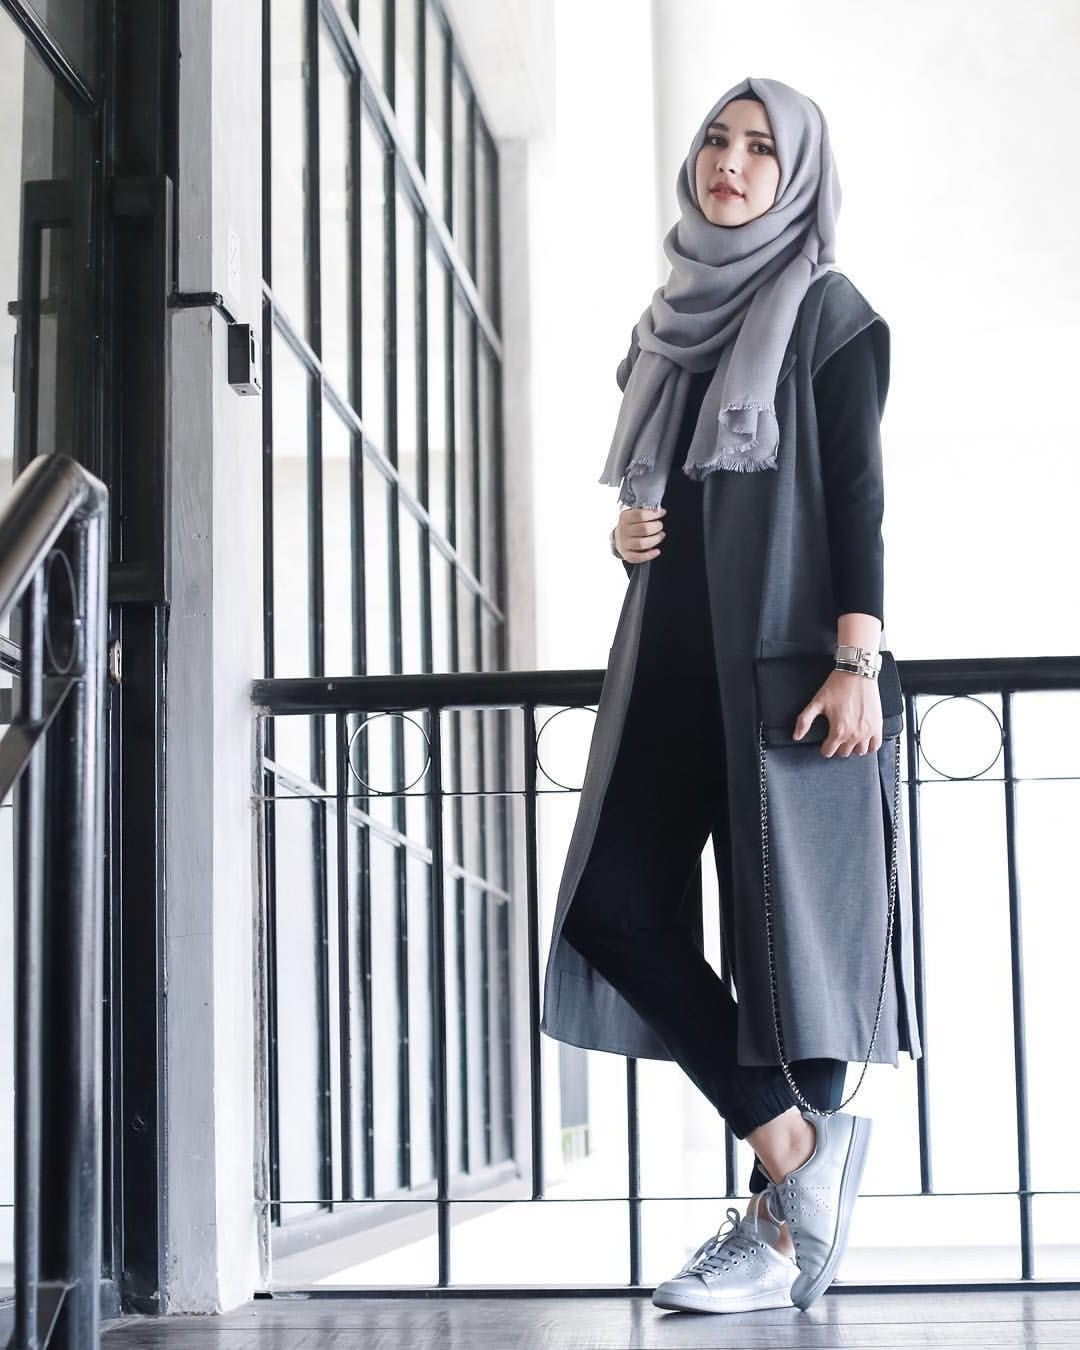 Ide Fashion Muslim Remaja Bqdd Muslimah Fashion & Hijab Style